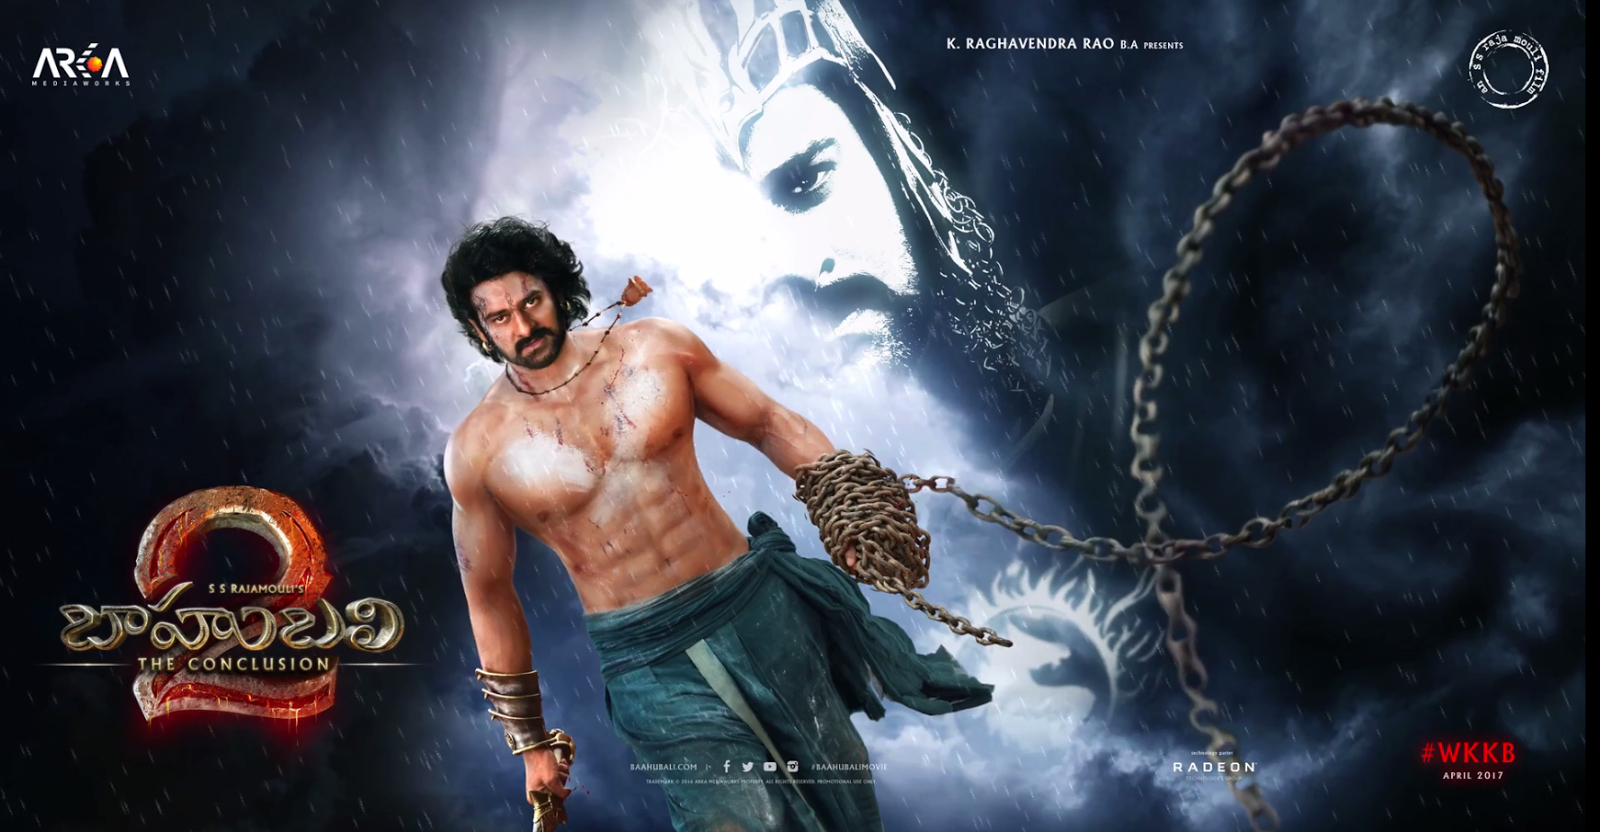 Bahubali Full Movie In Telugu Hd 1080p Download http